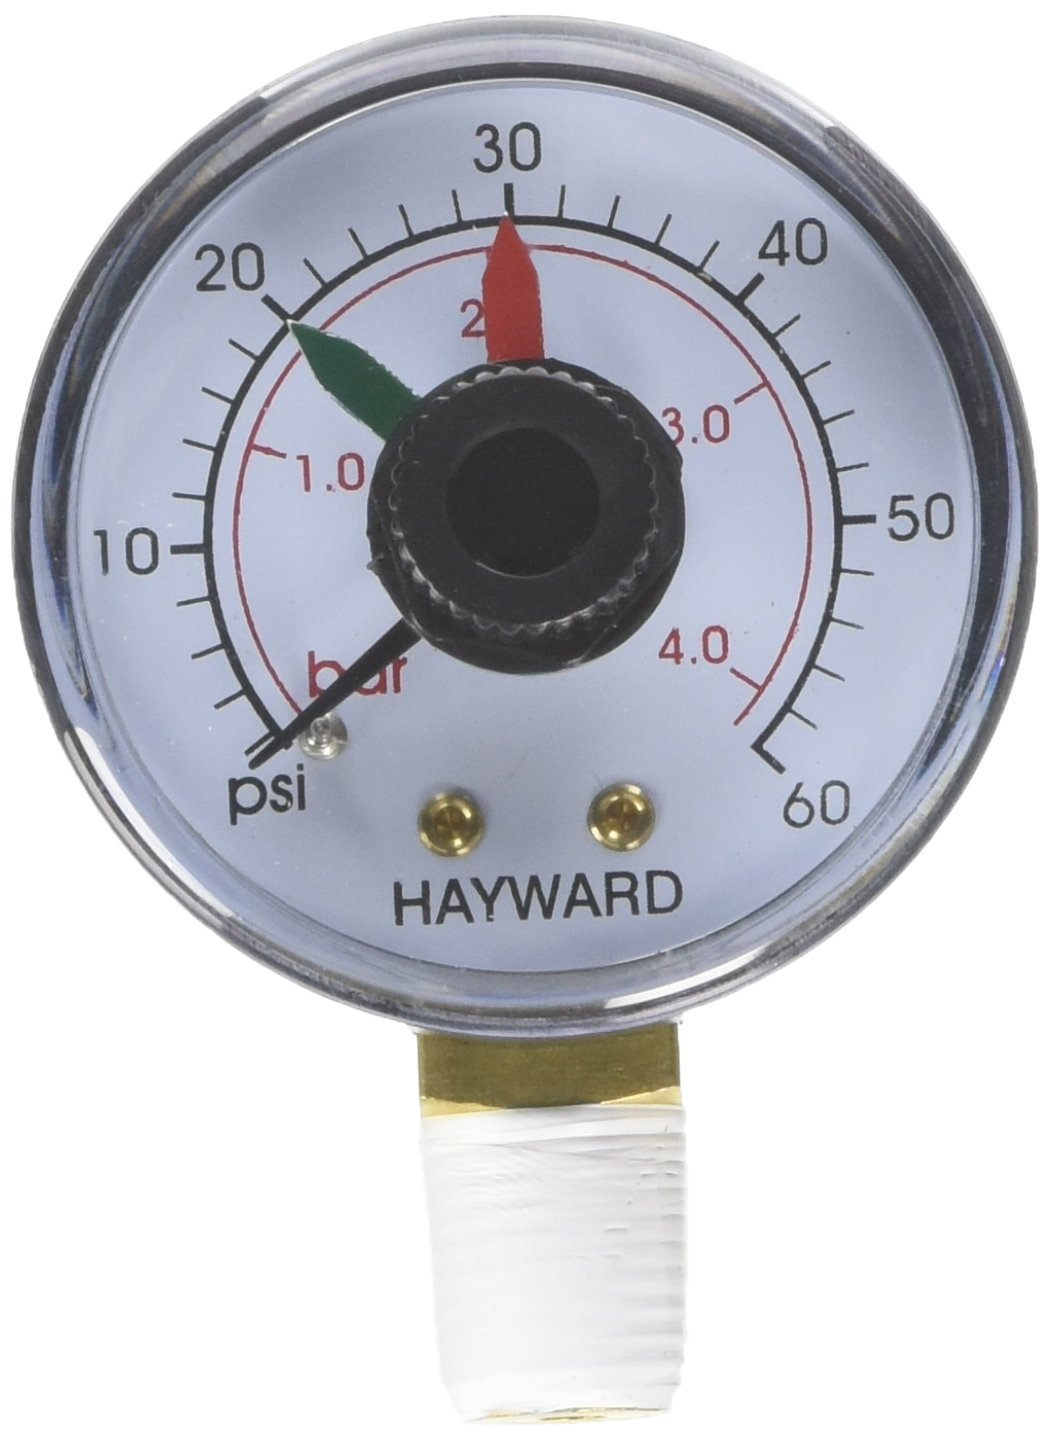 Hayward D.E.CX271261 Boxed Pressure Gauge with Dial Replacement for Select Filter and Multiport Valve ECX271261